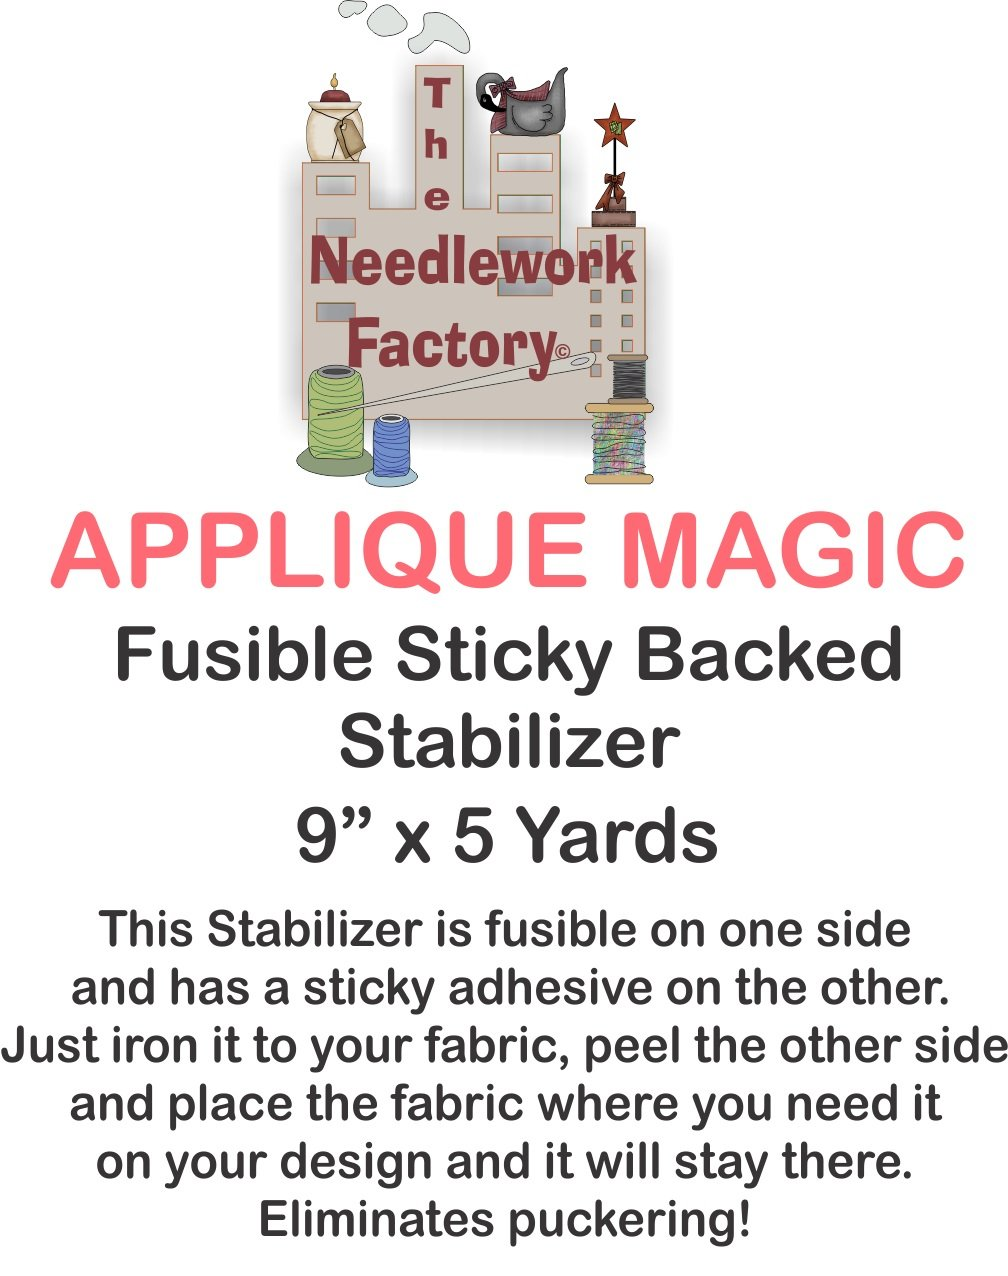 The Needlework Factory Applique Magic